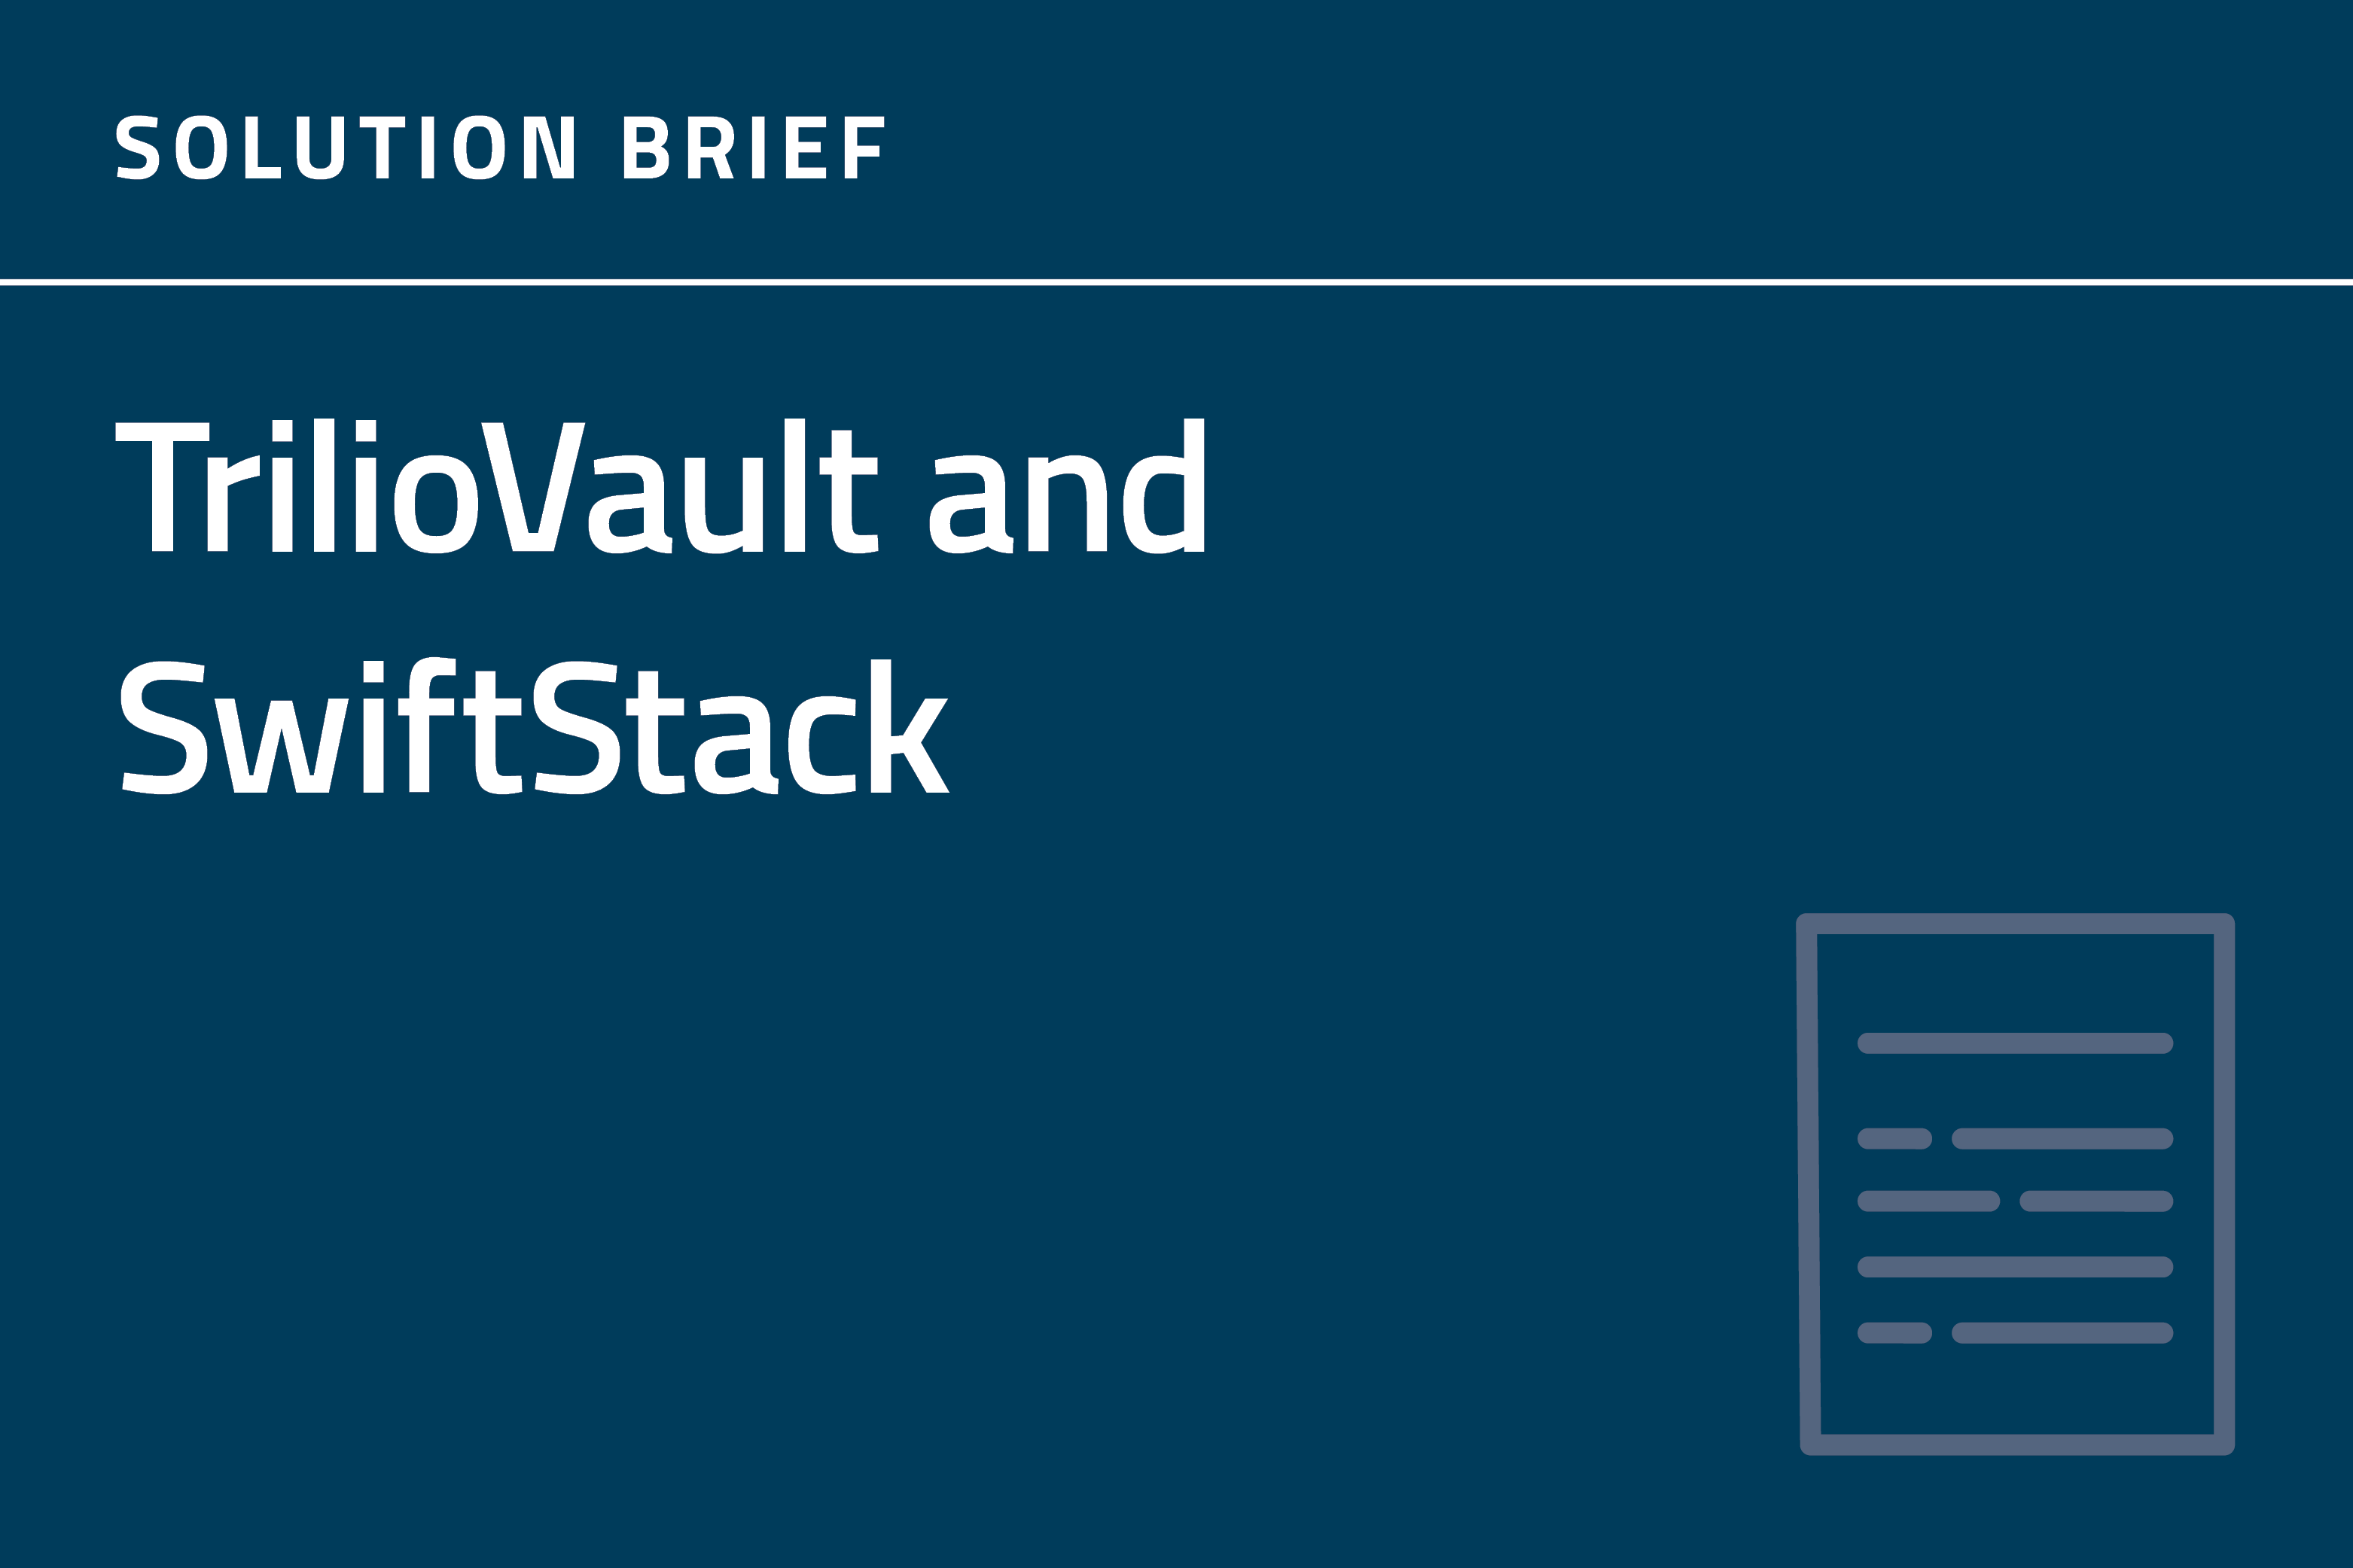 TrilioVault and SwiftStack Solution Brief